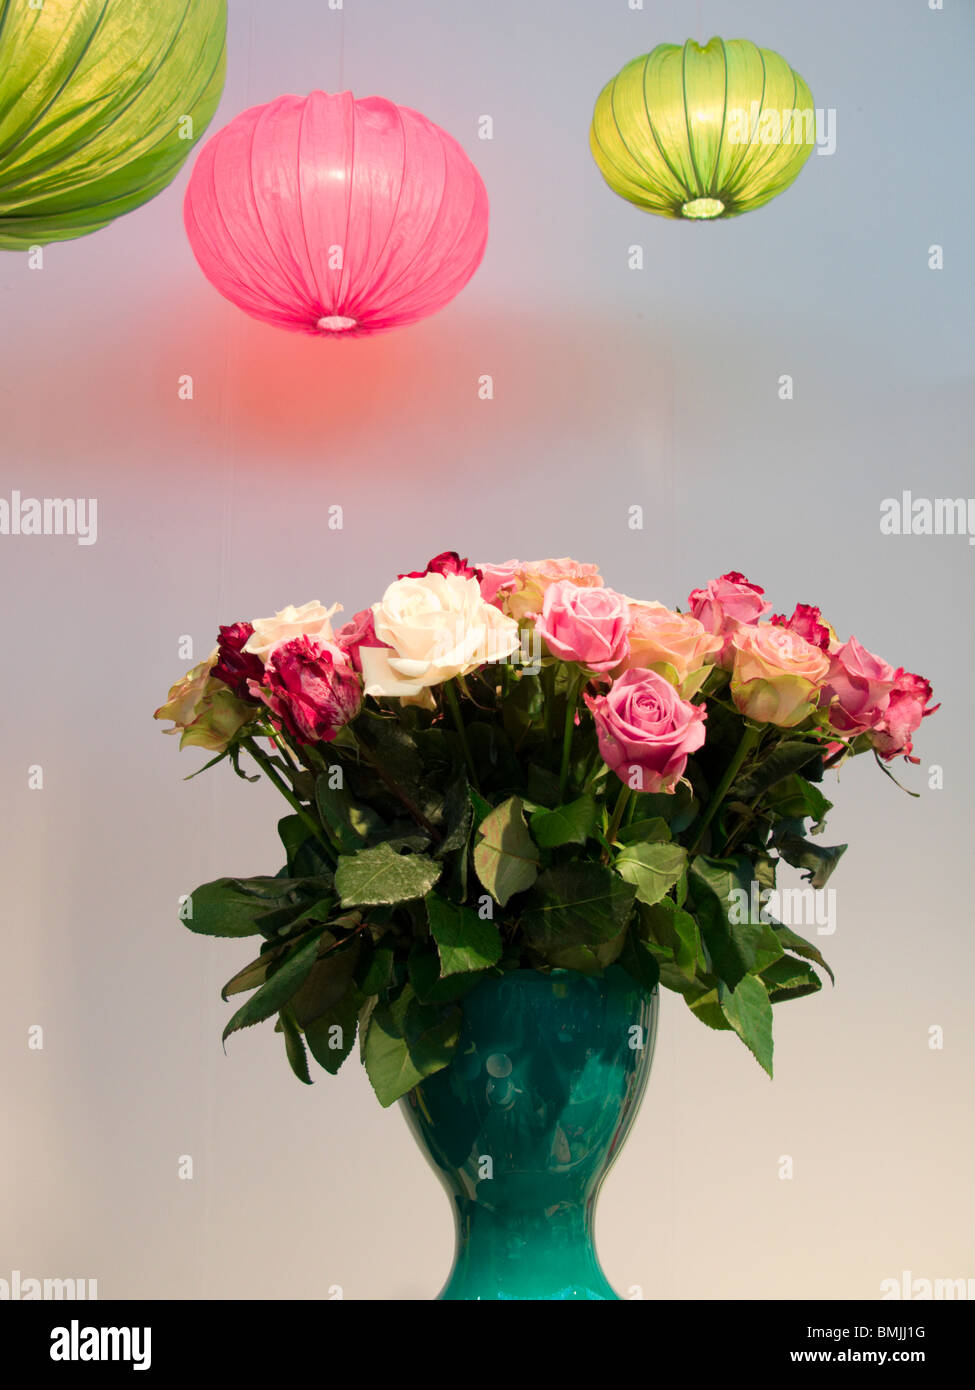 Pink and green ceiling lamps and roses in a vase, Sweden. - Stock Image